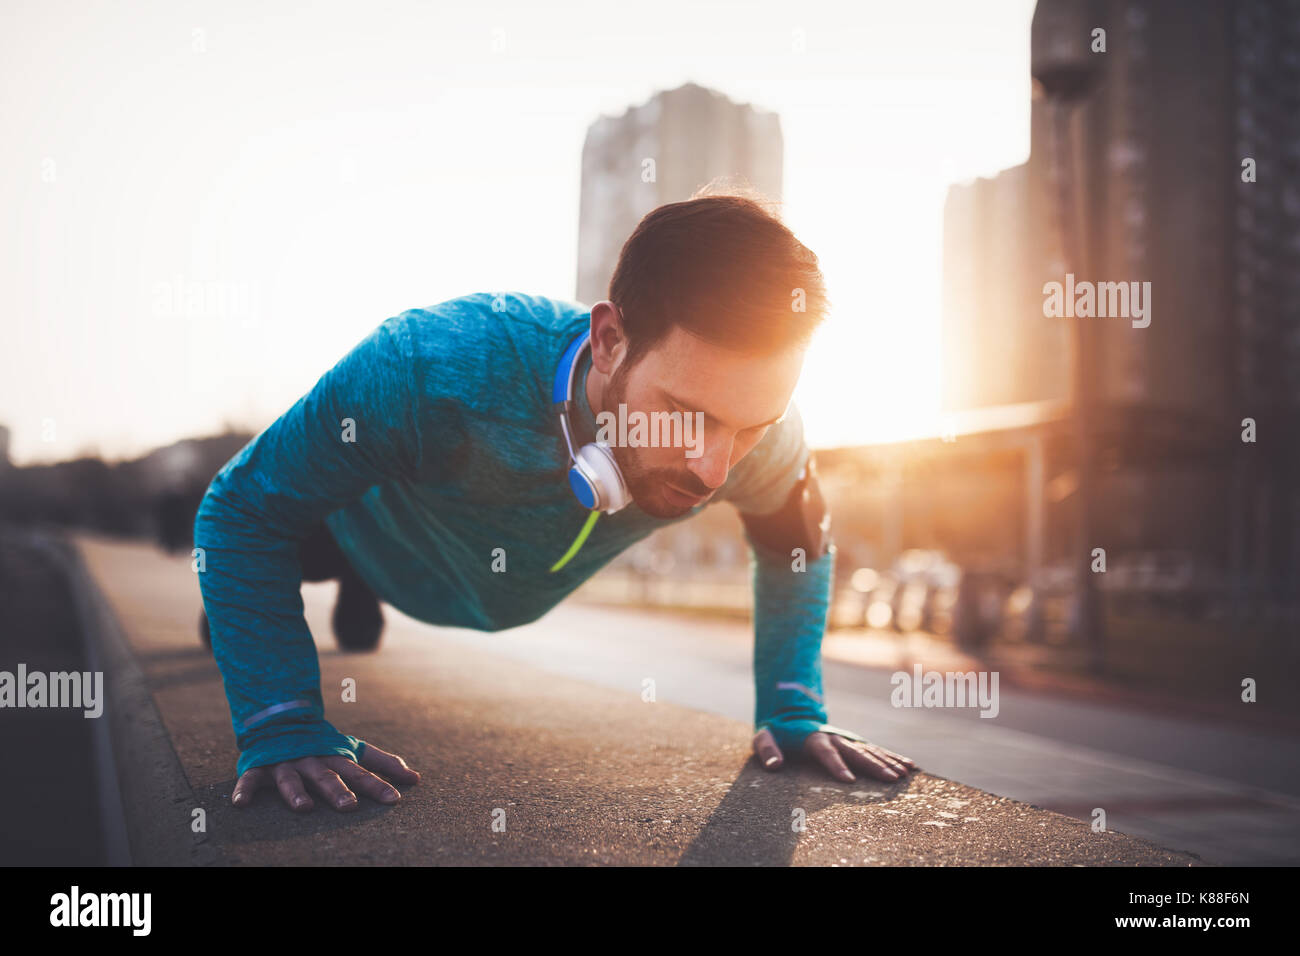 Handsome man urban workout in sunset - Stock Image